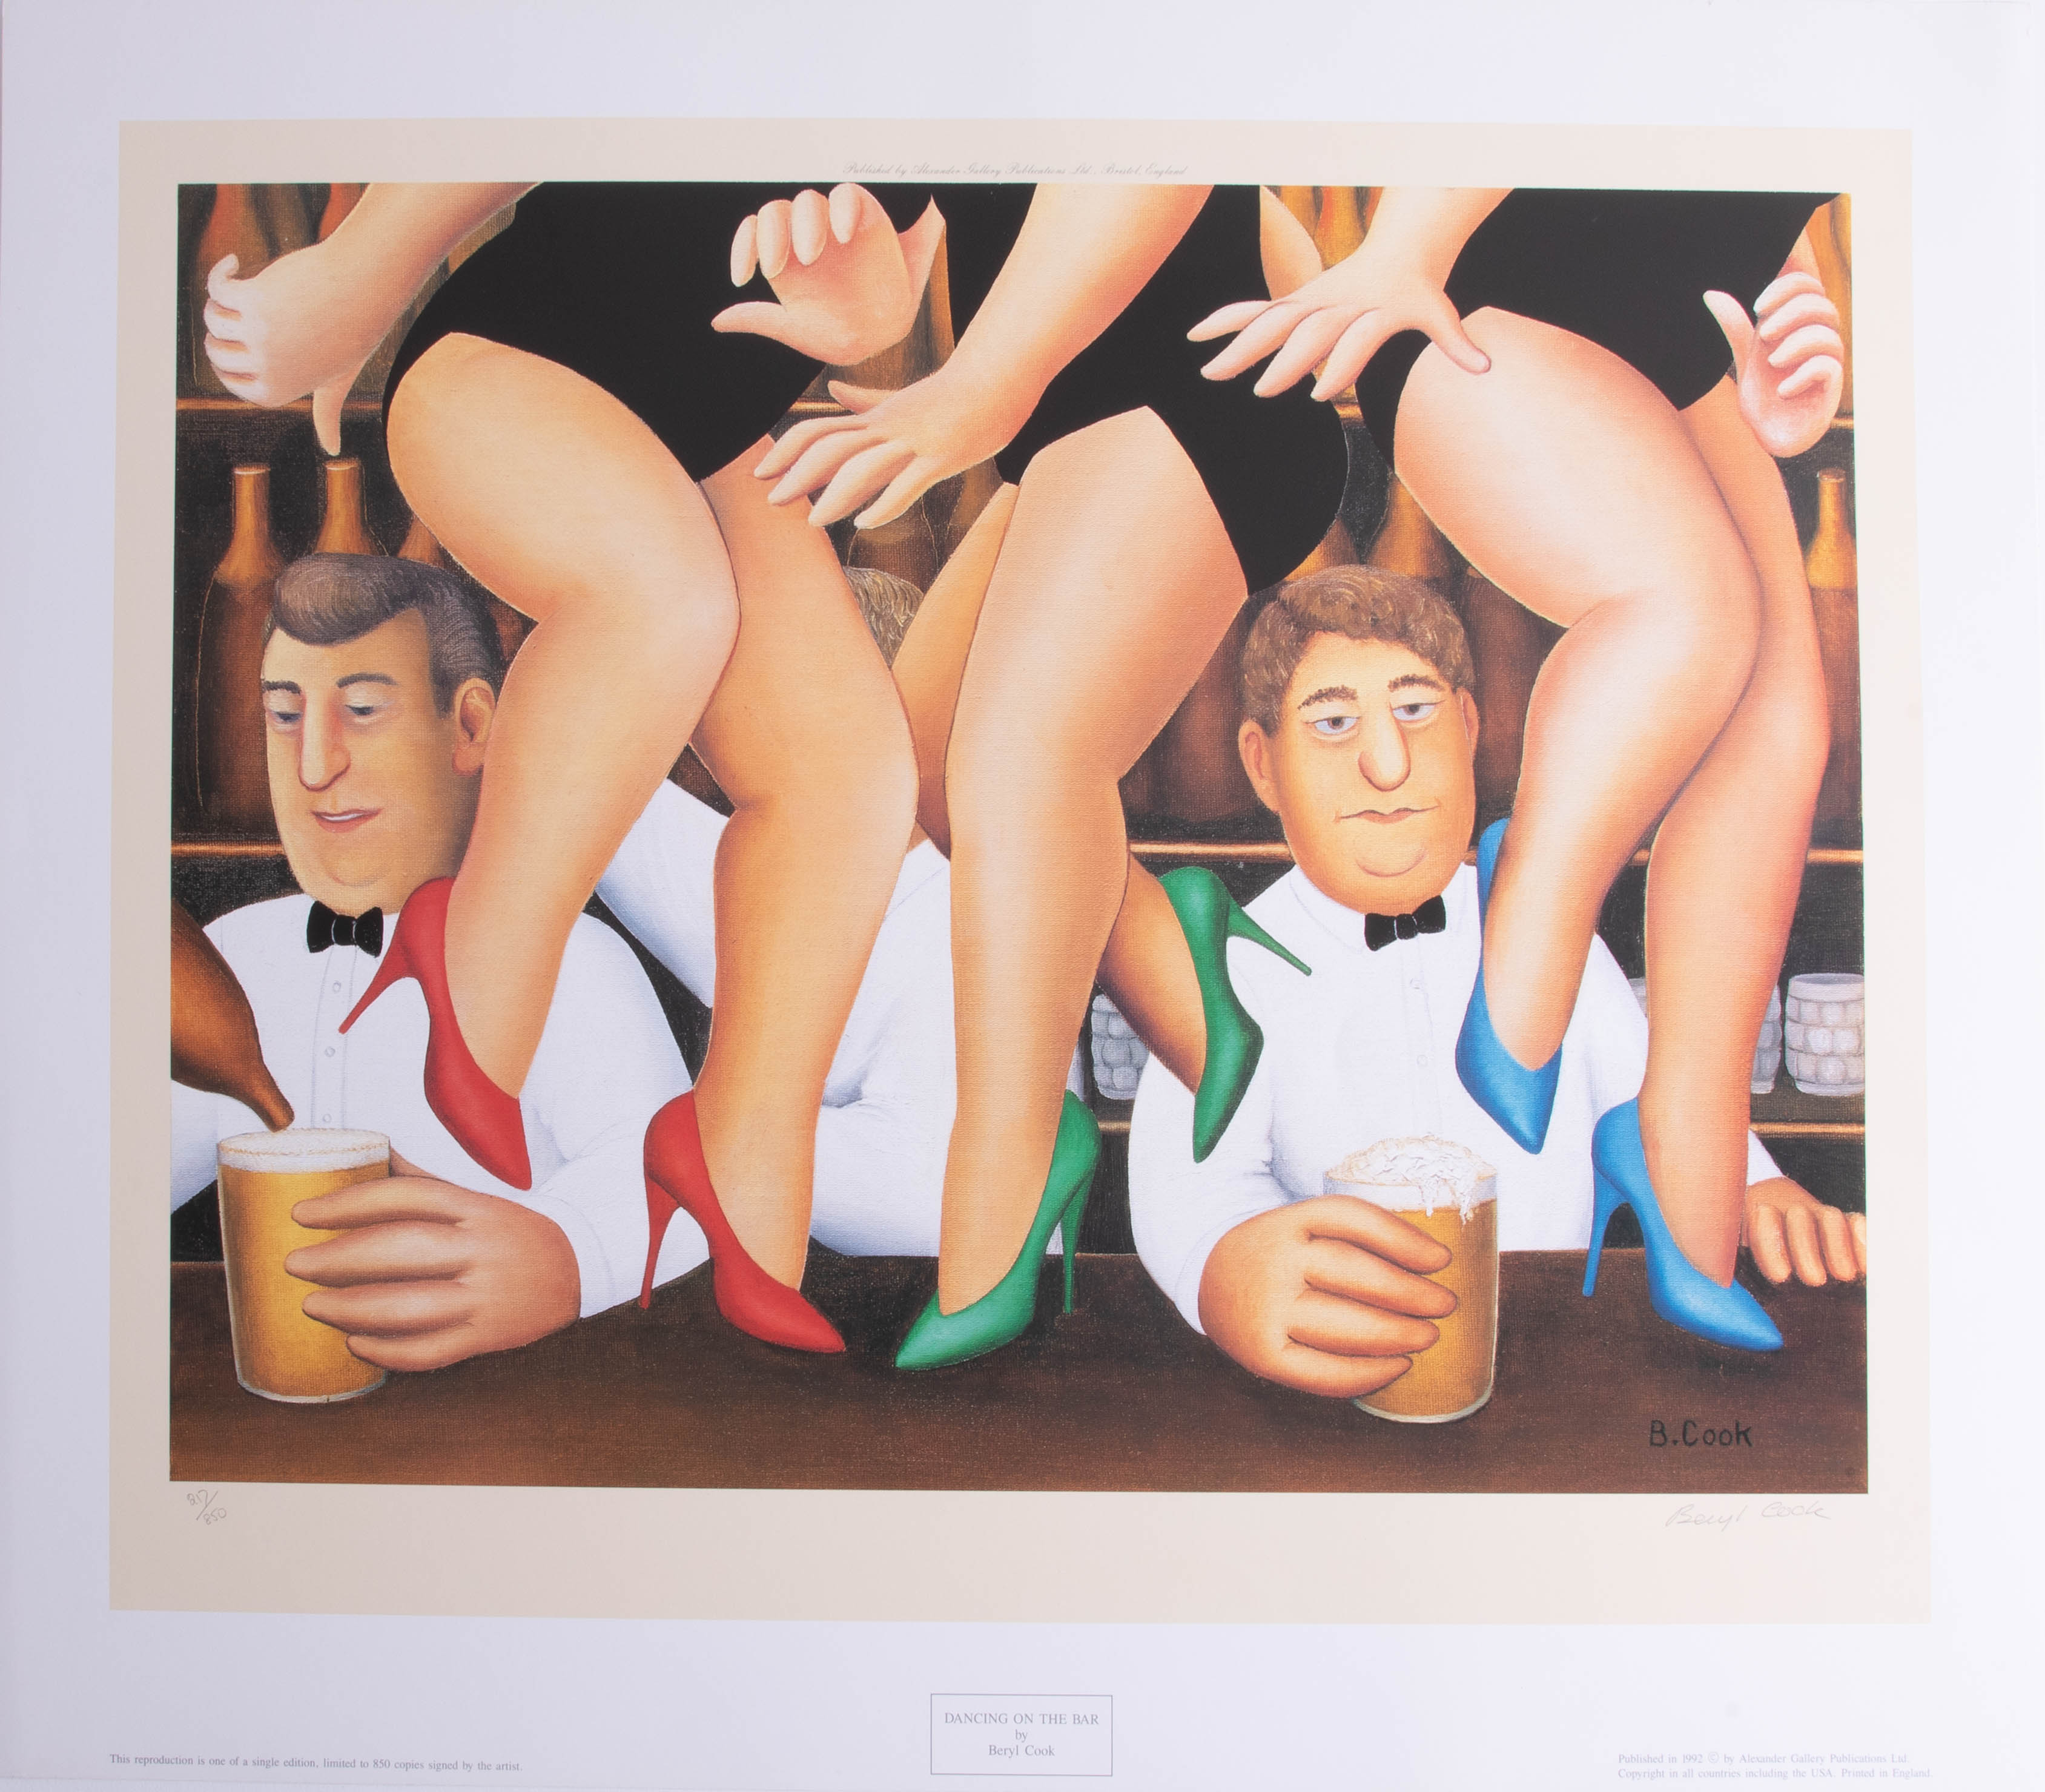 Lot 030 - Beryl Cook (1926-2008), 'Dancing on the Bar' signed limited edition print, No 217/850, published